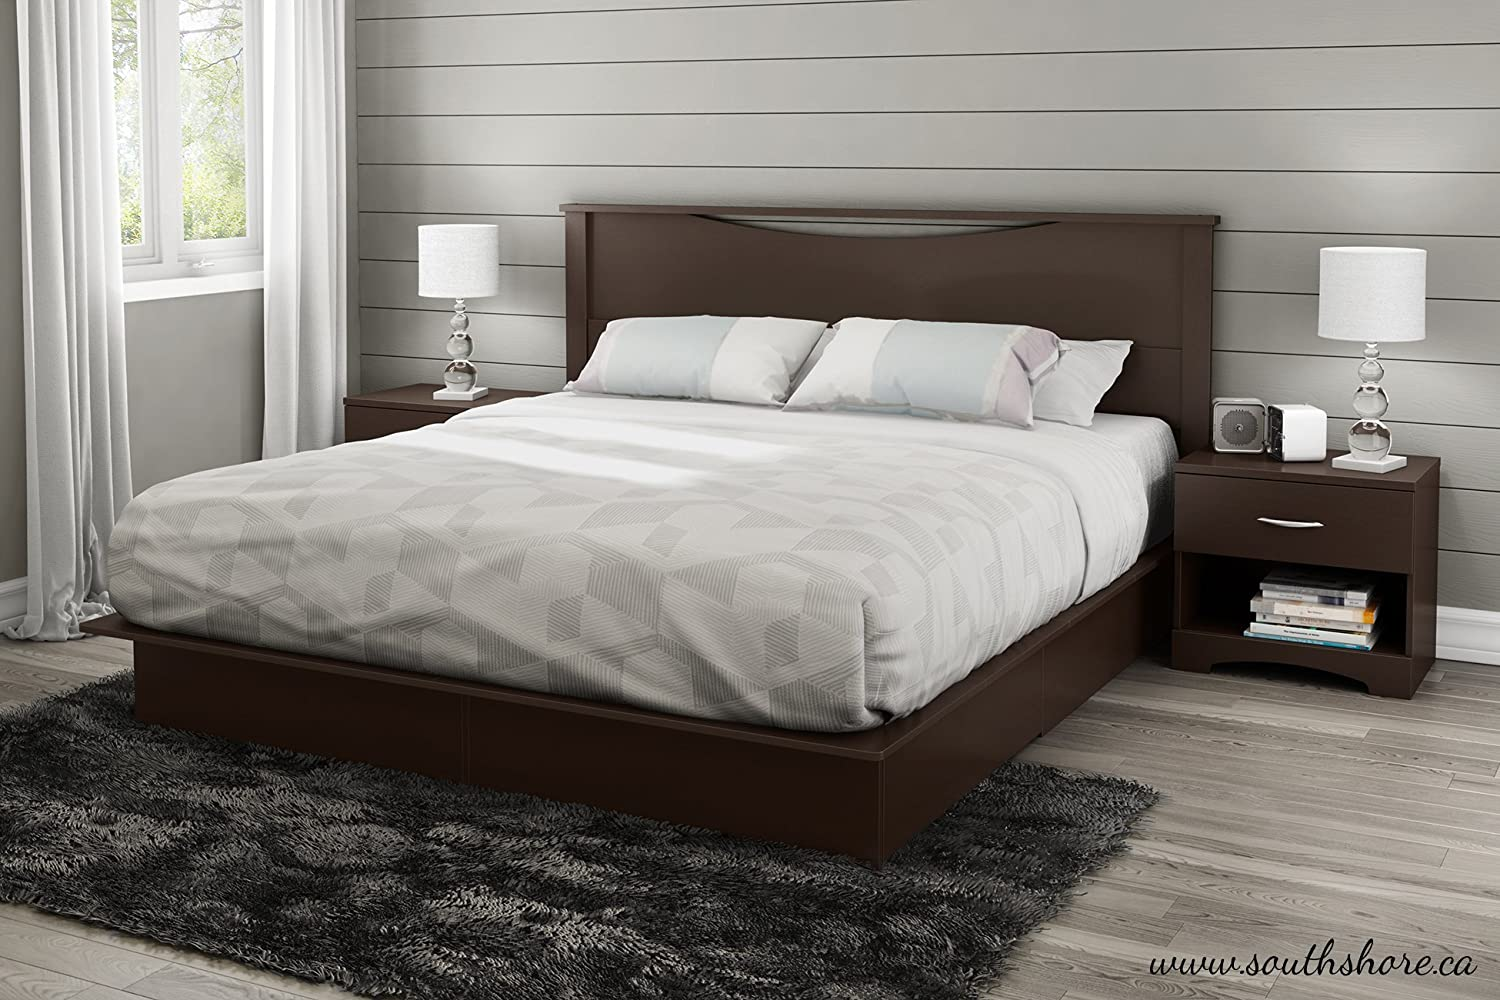 Amazon.com: South Shore Step One Platform Bed With Drawers, King,  Chocolate: Kitchen U0026 Dining